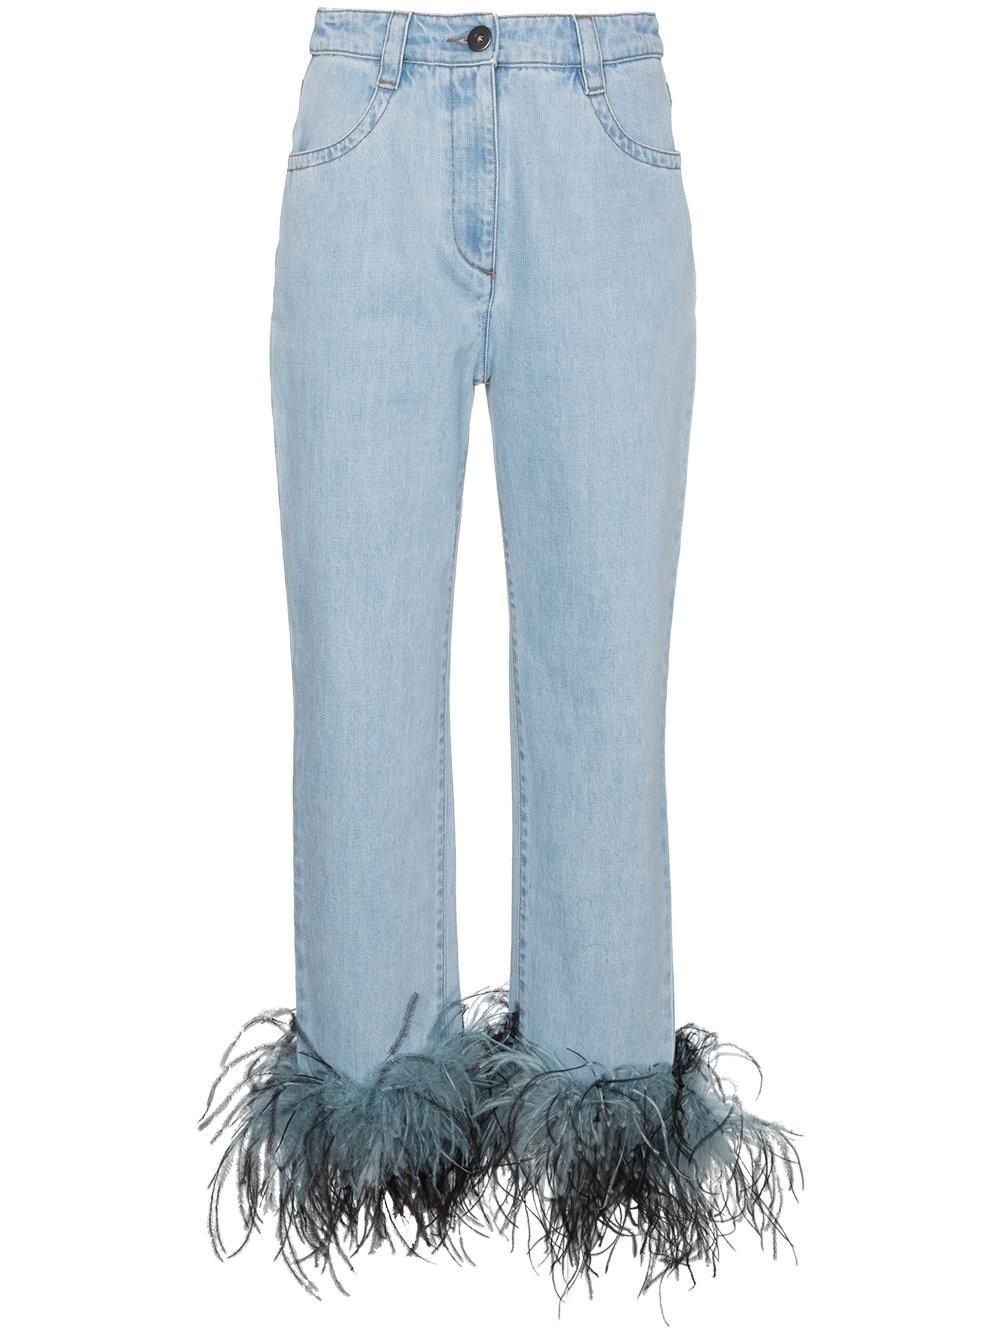 Womens Ostrich-Feather-Embellished Relaxed Jeans Prada Visit New For Sale YGnBVKbi